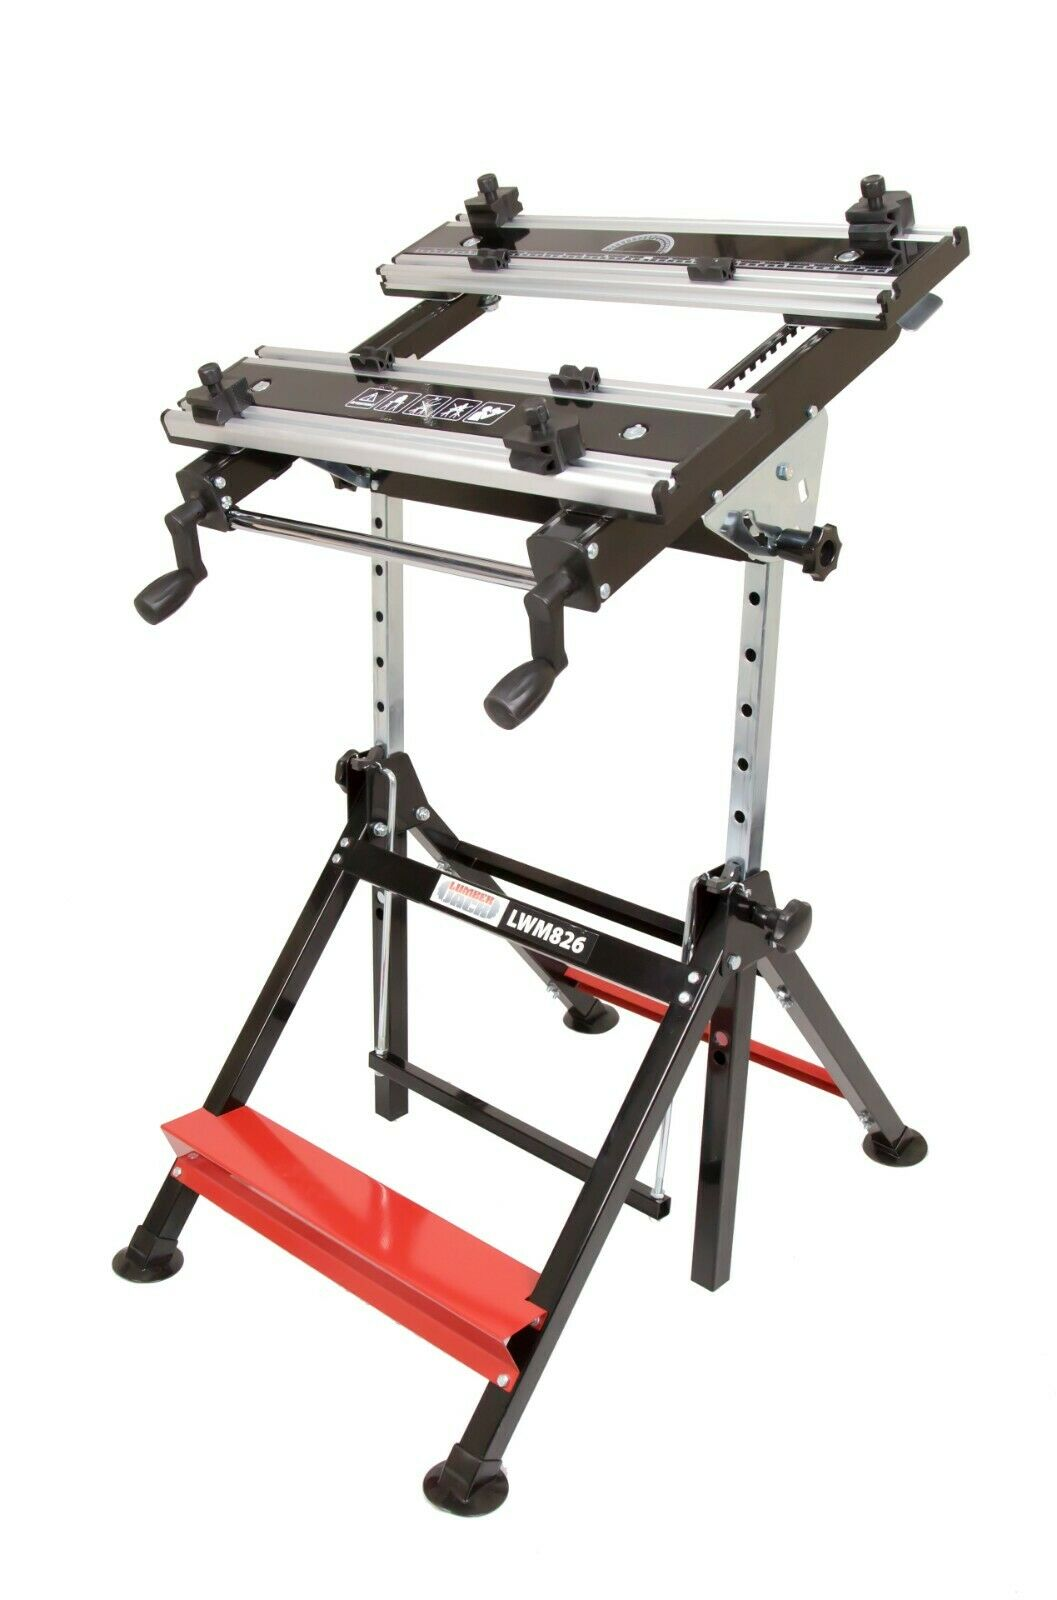 Lumberjack Lwm826 Folding Work Bench Mate Portable Workmate Trestle Stand Eur 73 28 Picclick It